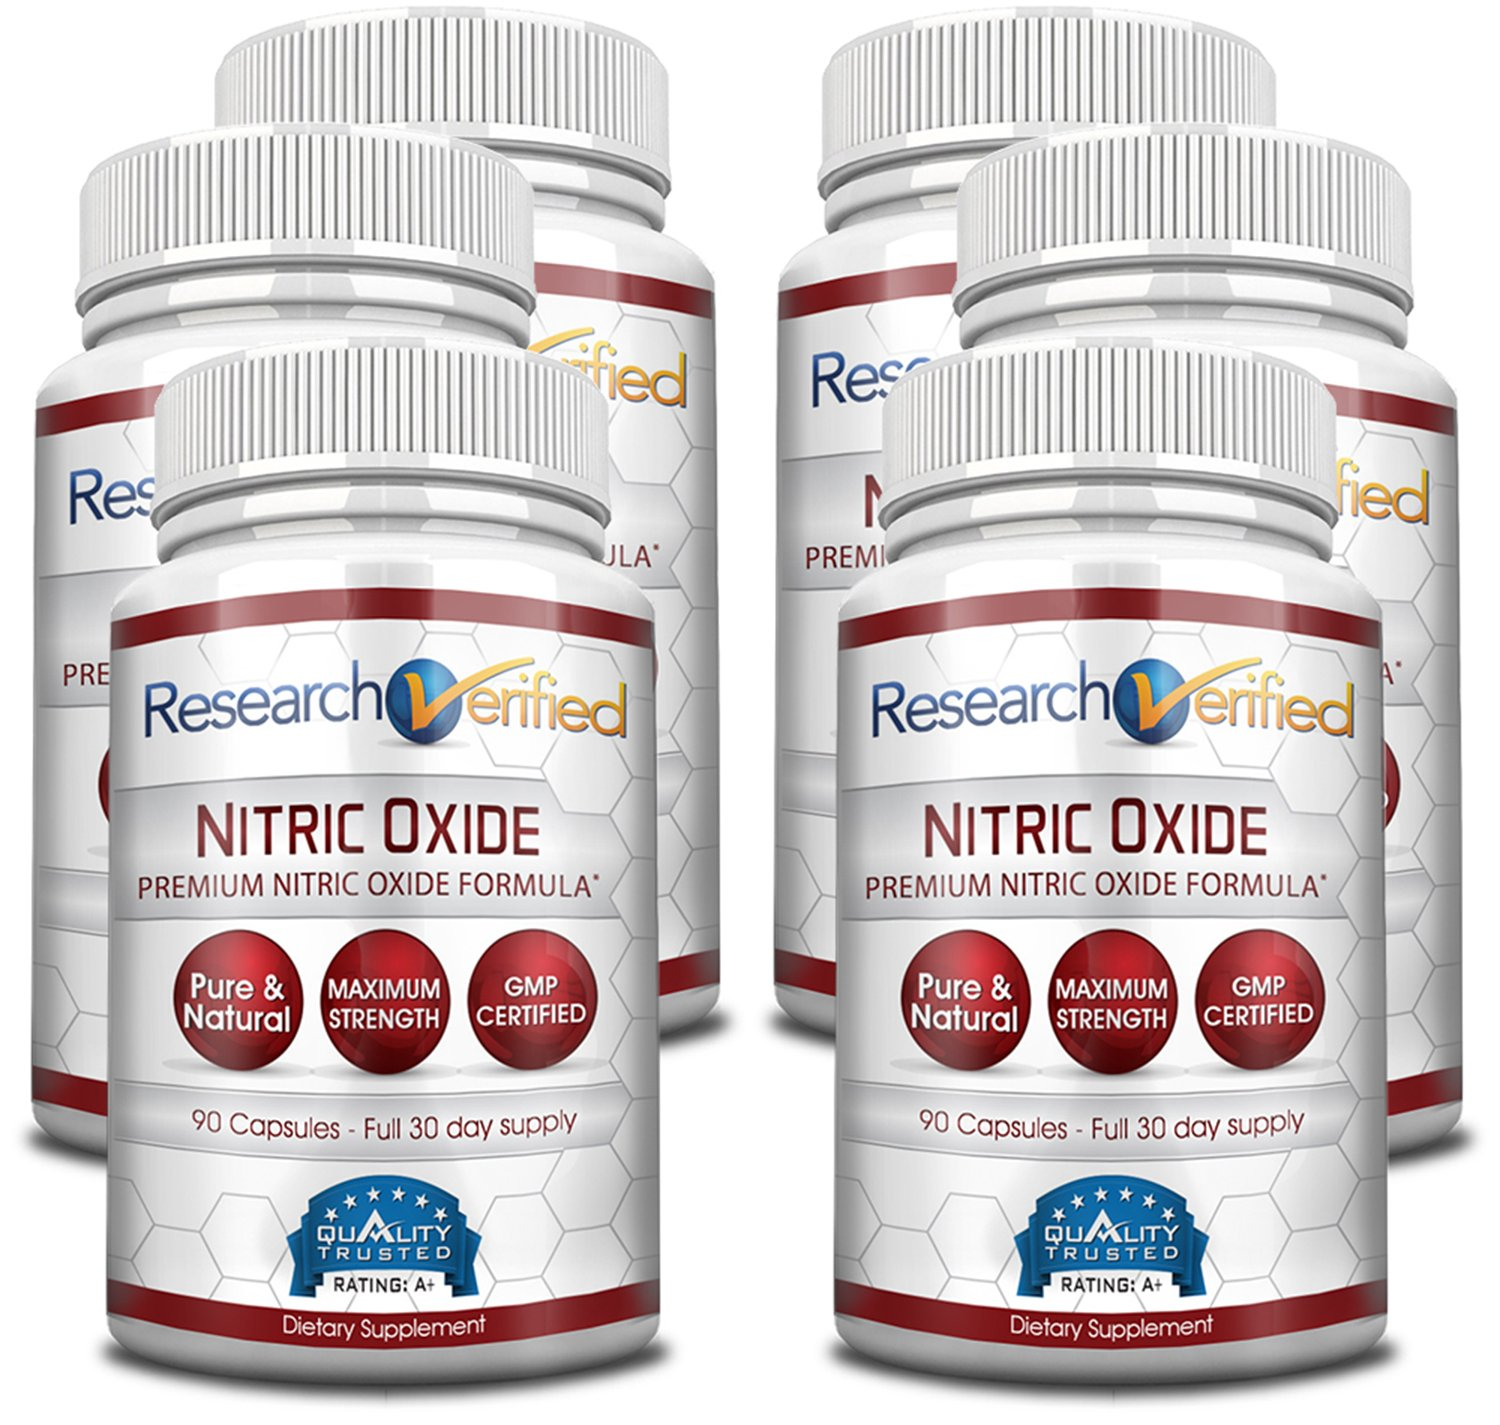 Research Verified Nitric Oxide - With L-Arginine and L-Citrulline - Premium Muscle Building Nitric Oxide Booster - 100% money-back guarantee! 6 Months Supply